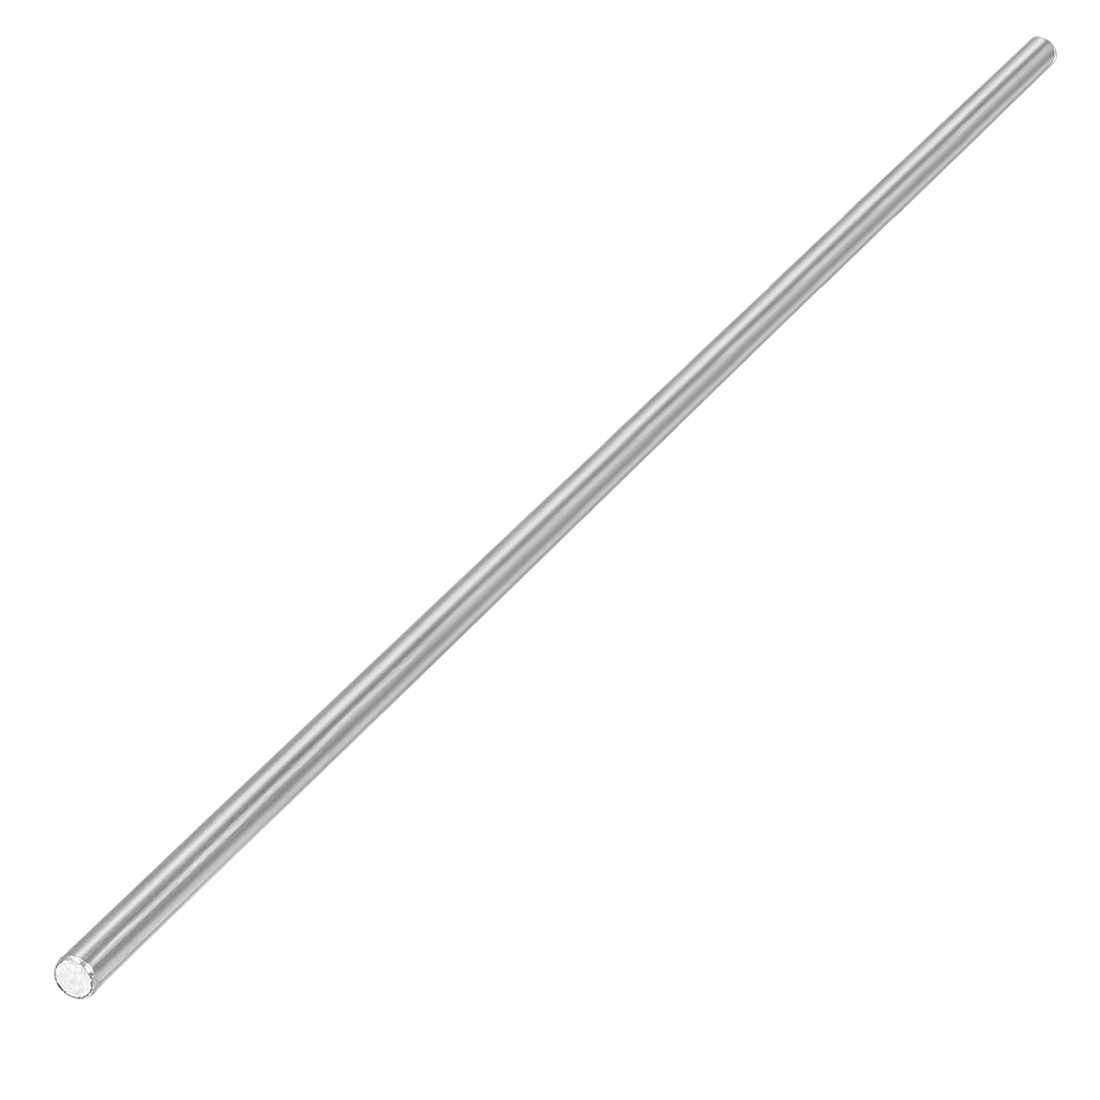 2mm Dia 180mm Length Stainless Steel Solid Round Shaft Rod for RC Model Toy